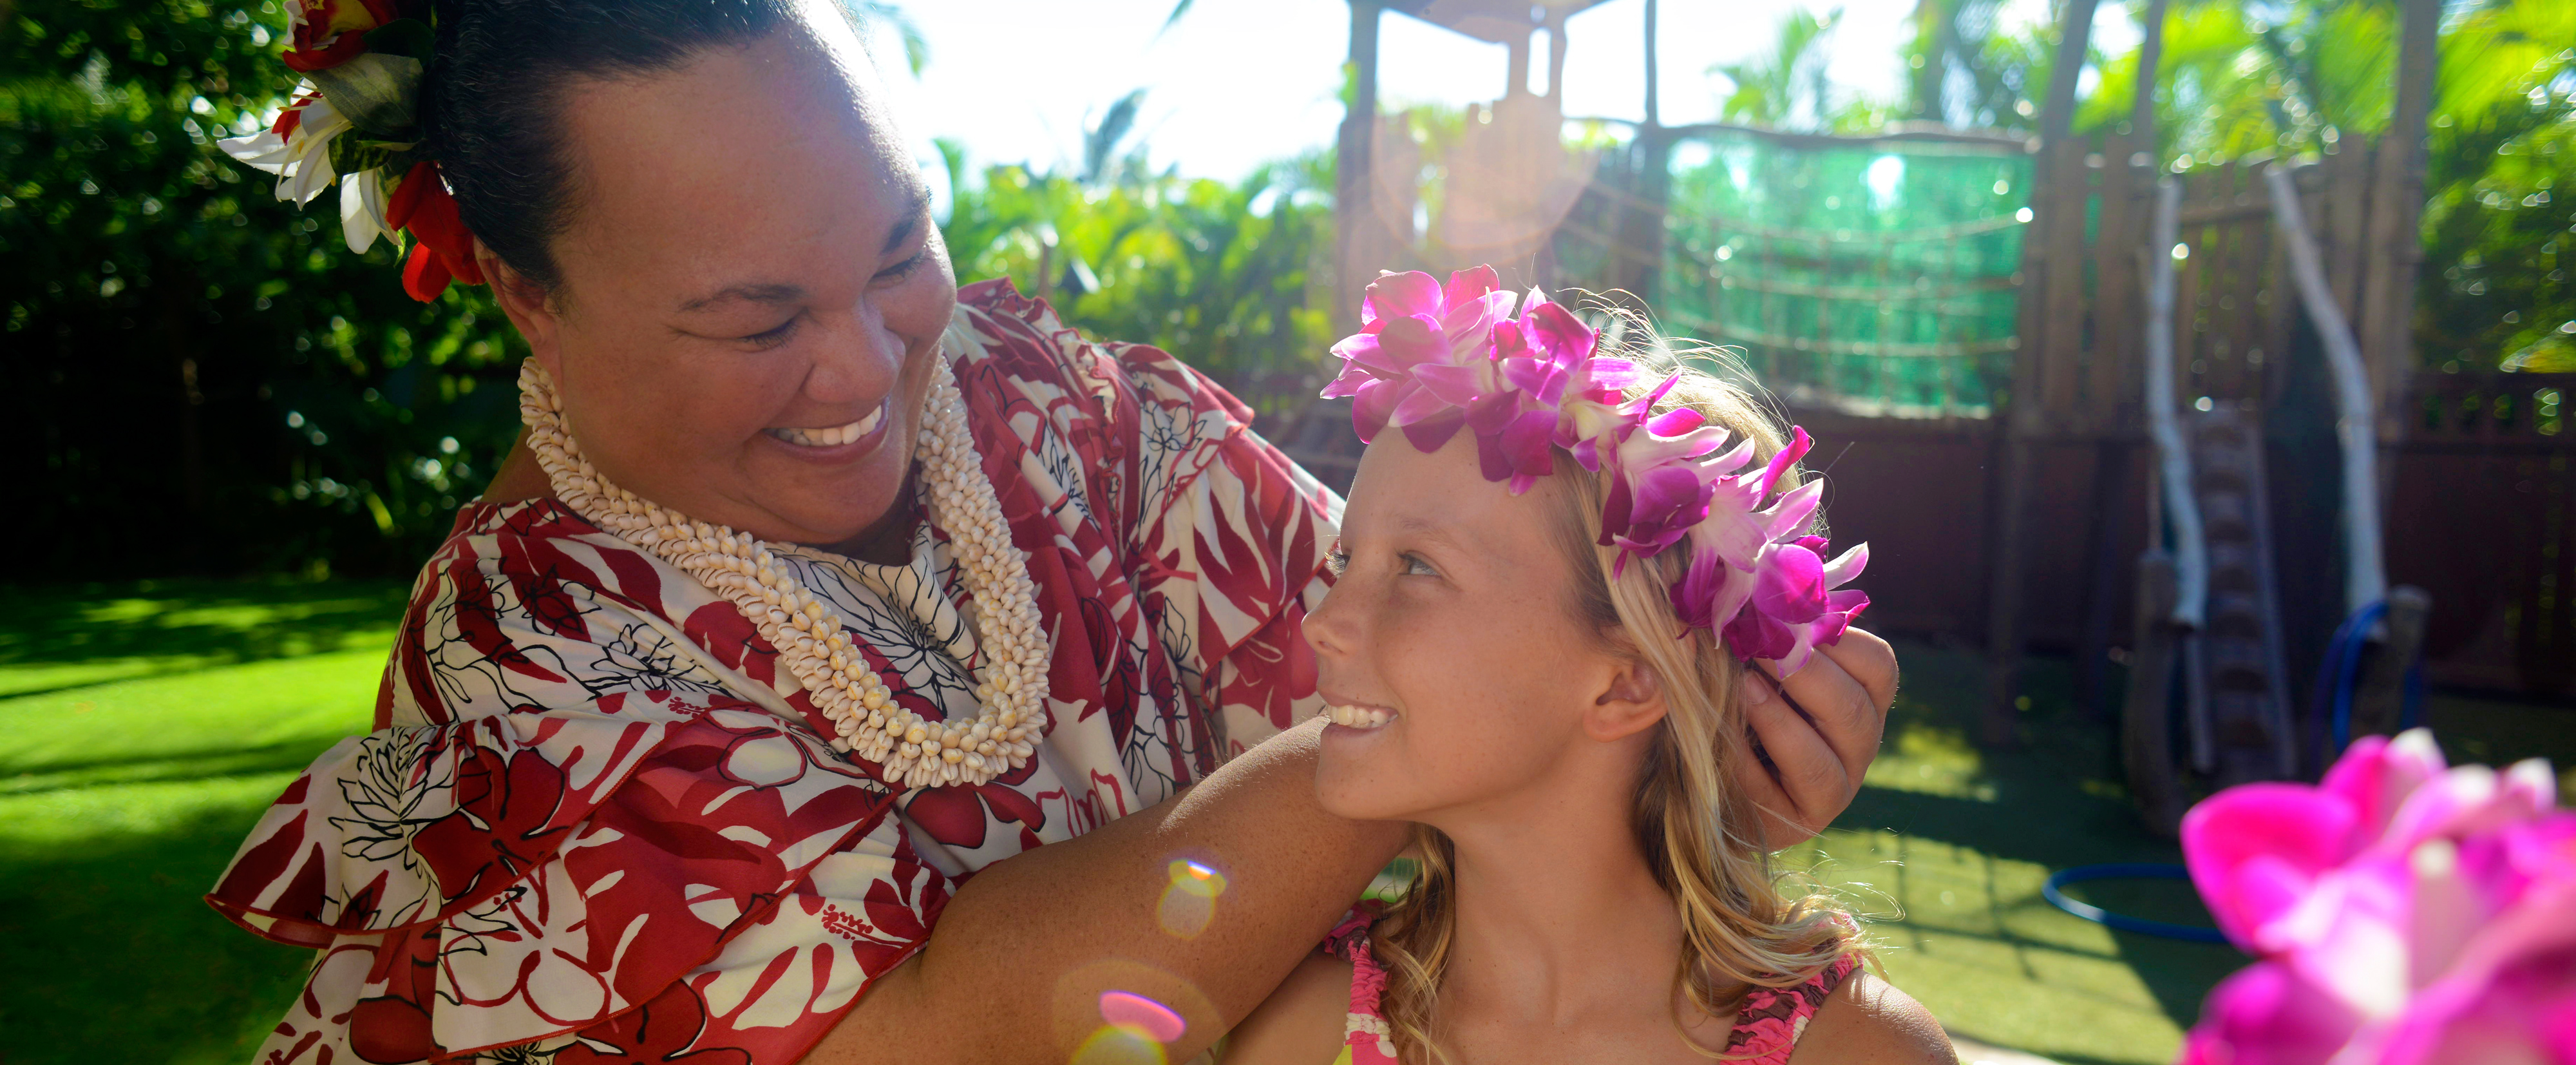 A smiling woman in Hawaiian garb puts a fuchsia orchid wreath on a young girl's head in a garden setting